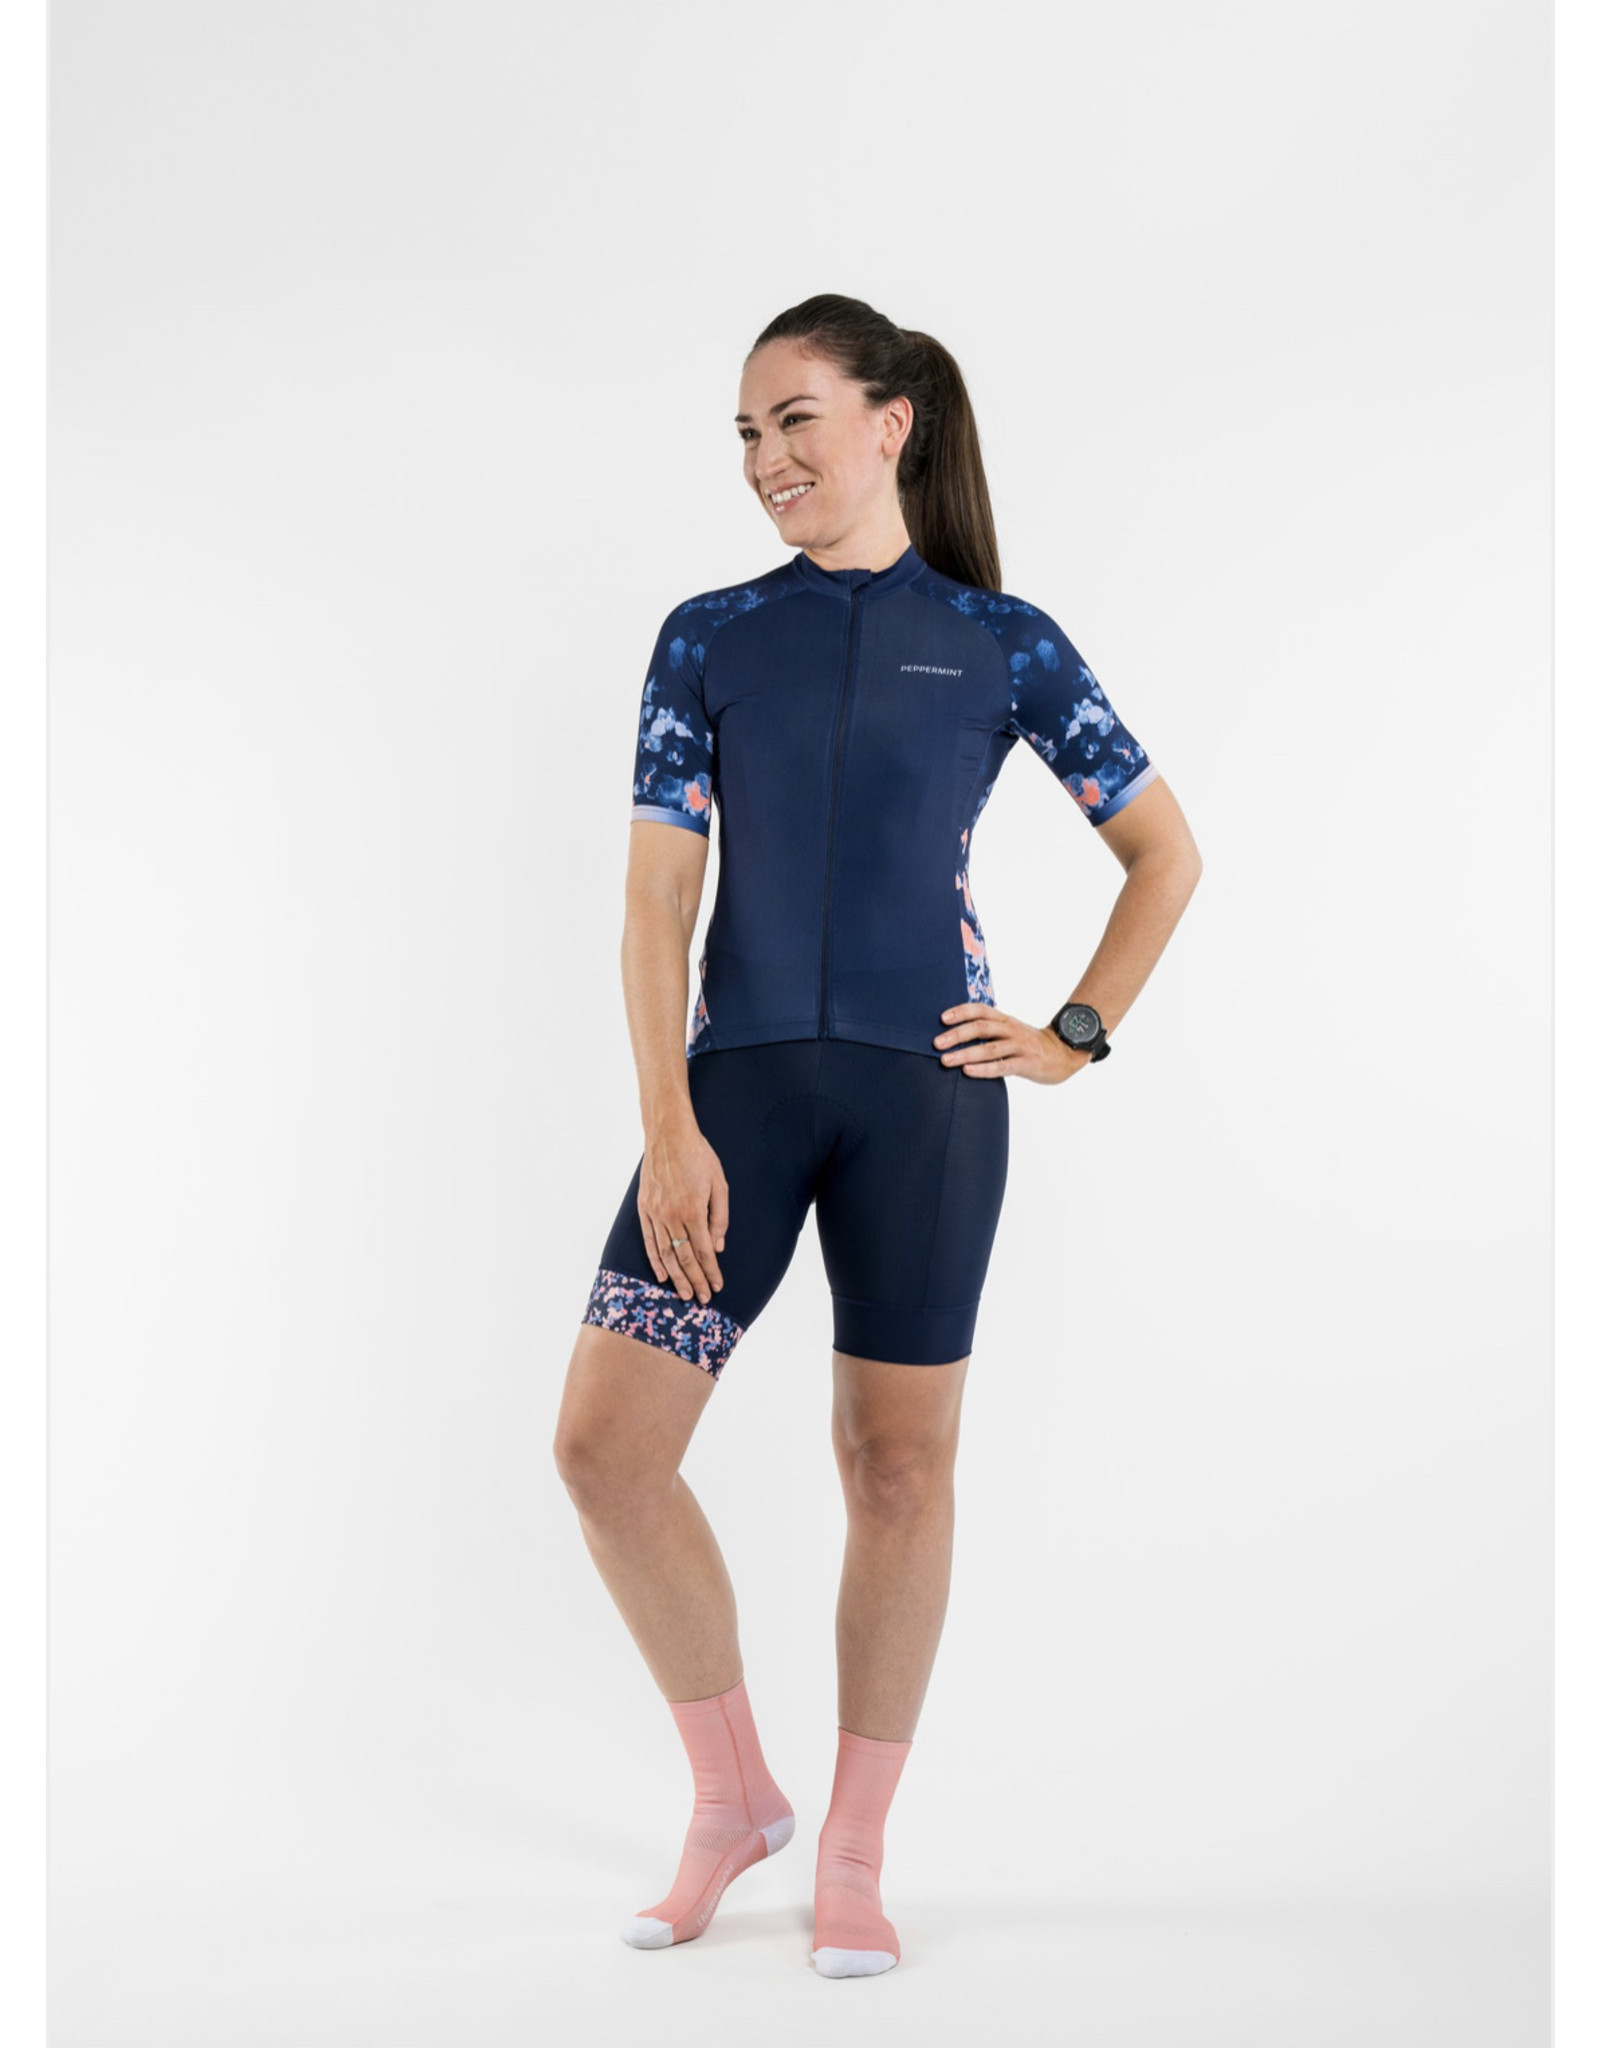 PEPPERMINT G1101 Maillot Signature